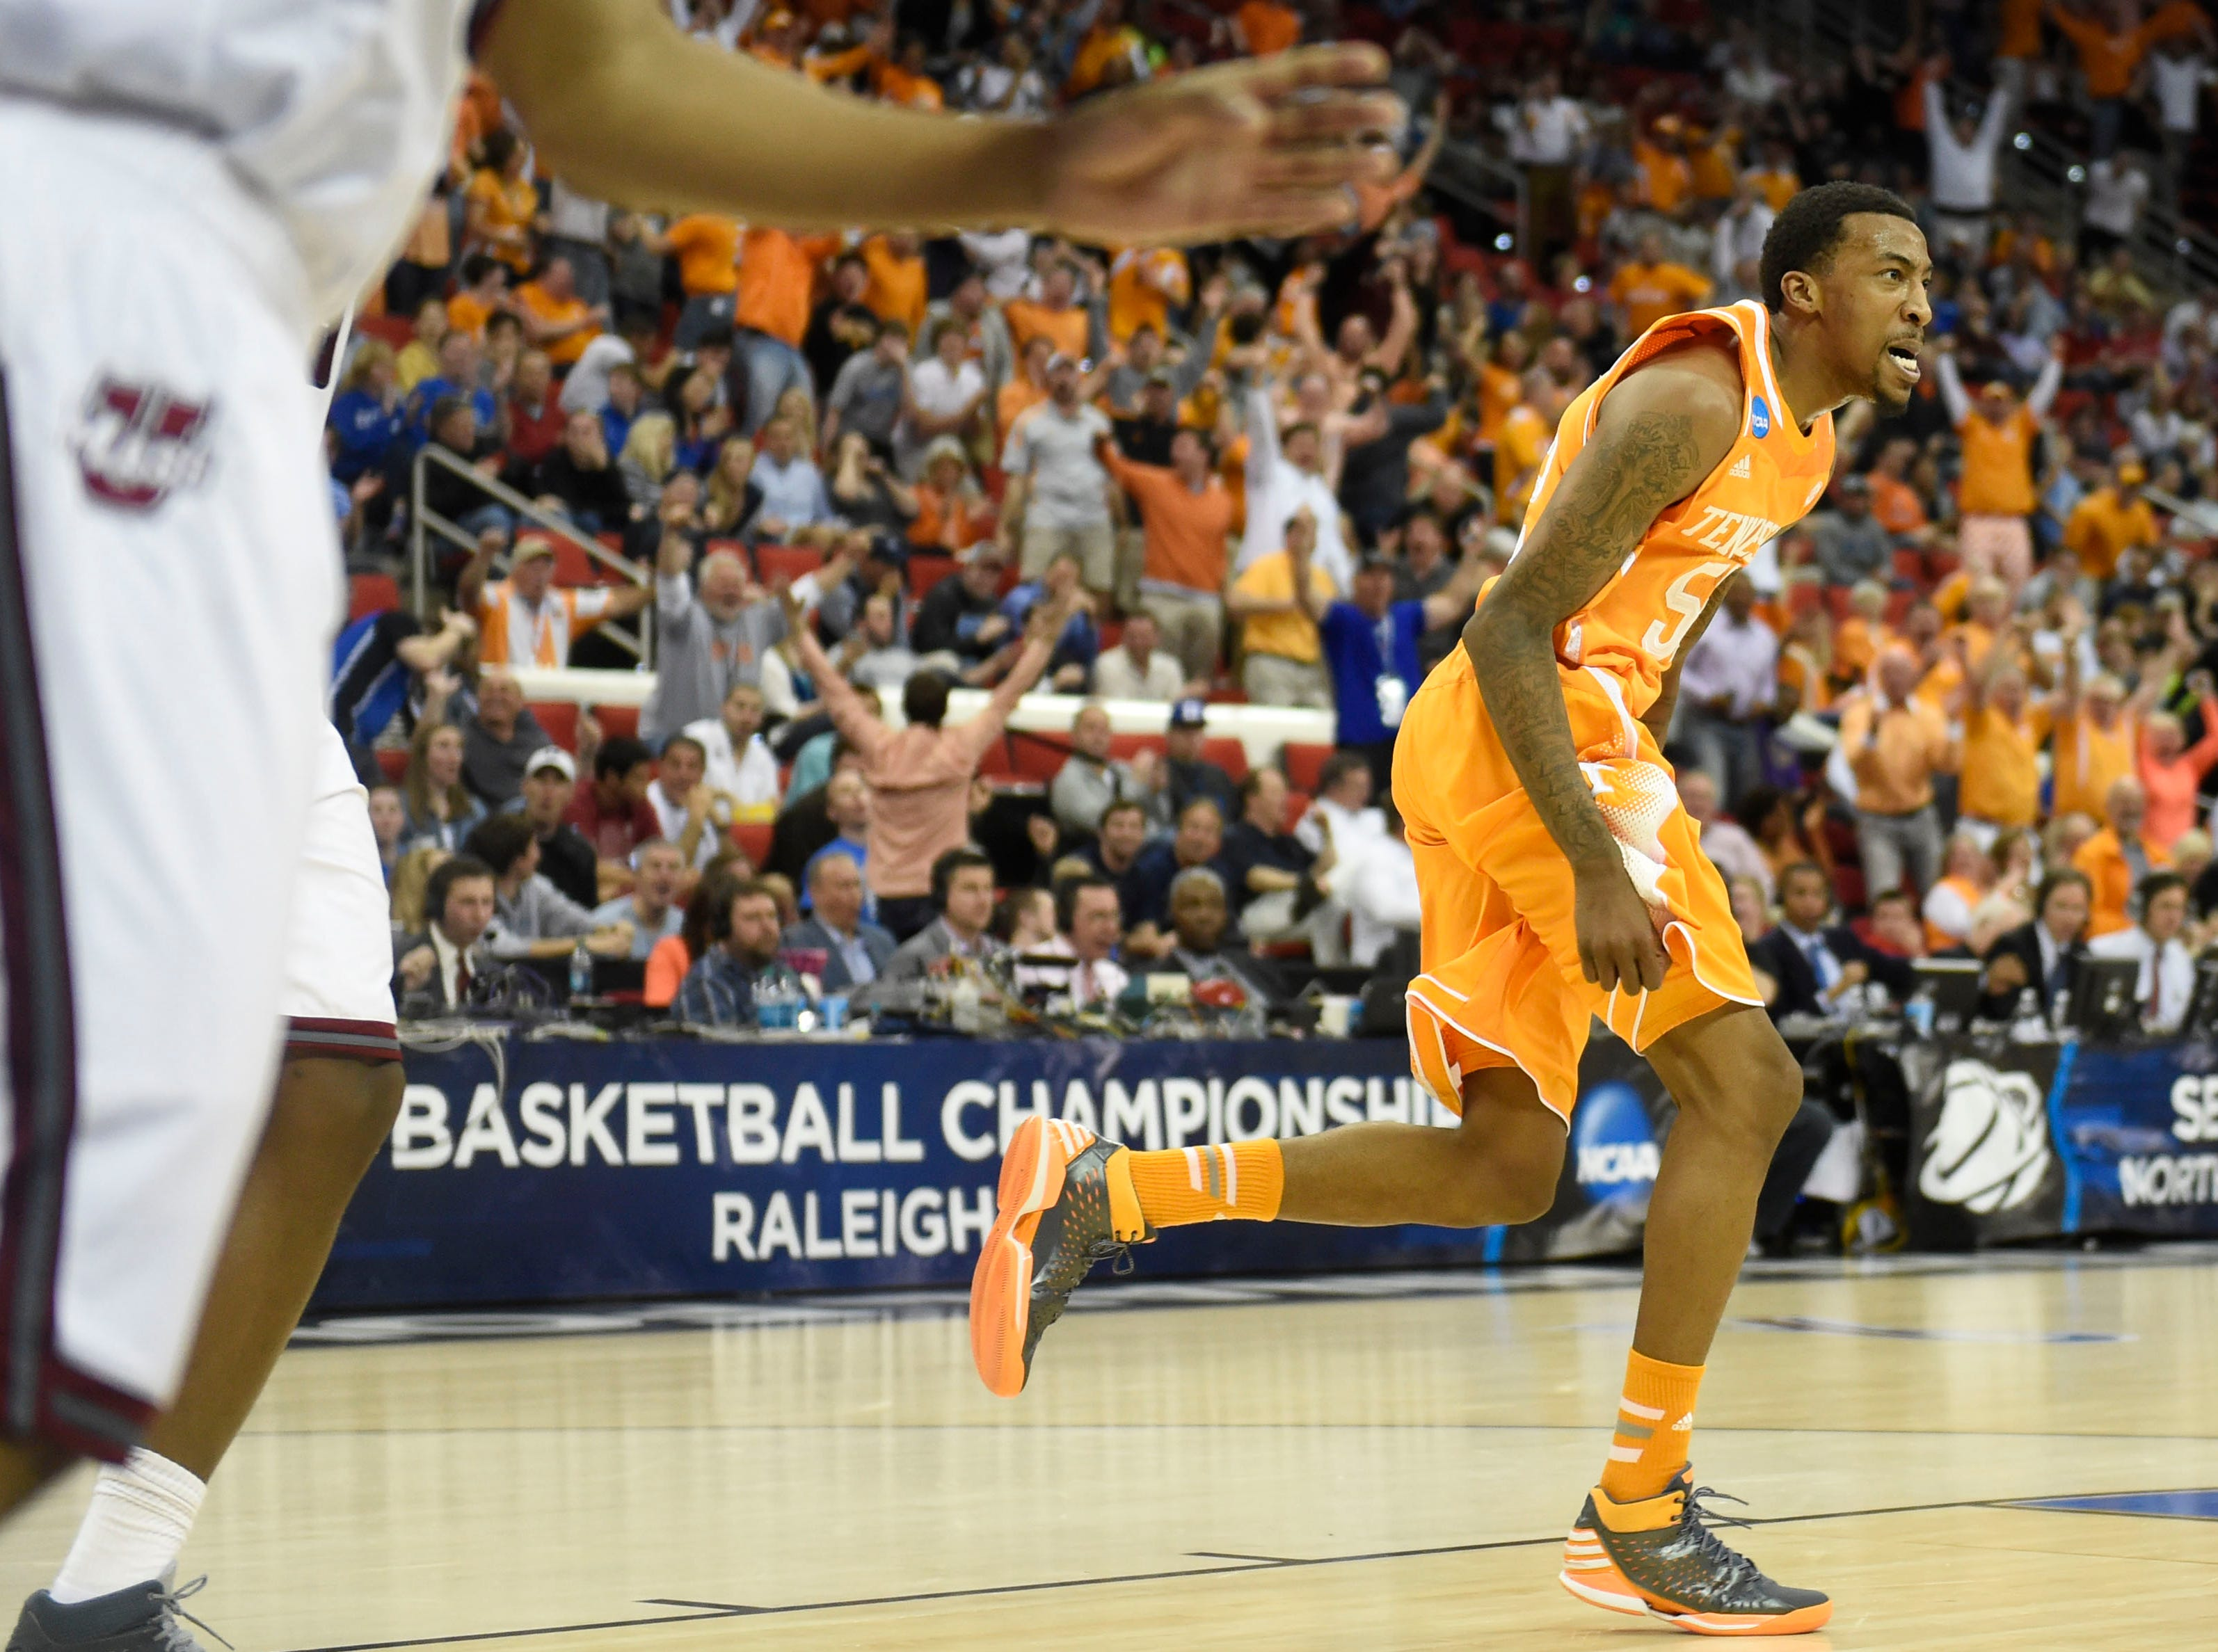 Tennessee guard Jordan McRae (52) reacts after hitting a slam dunk against Massachusetts during the first half of an NCAA tournament game at the PNC Arena in Raleigh, N.C. on Friday, March 21, 2014.